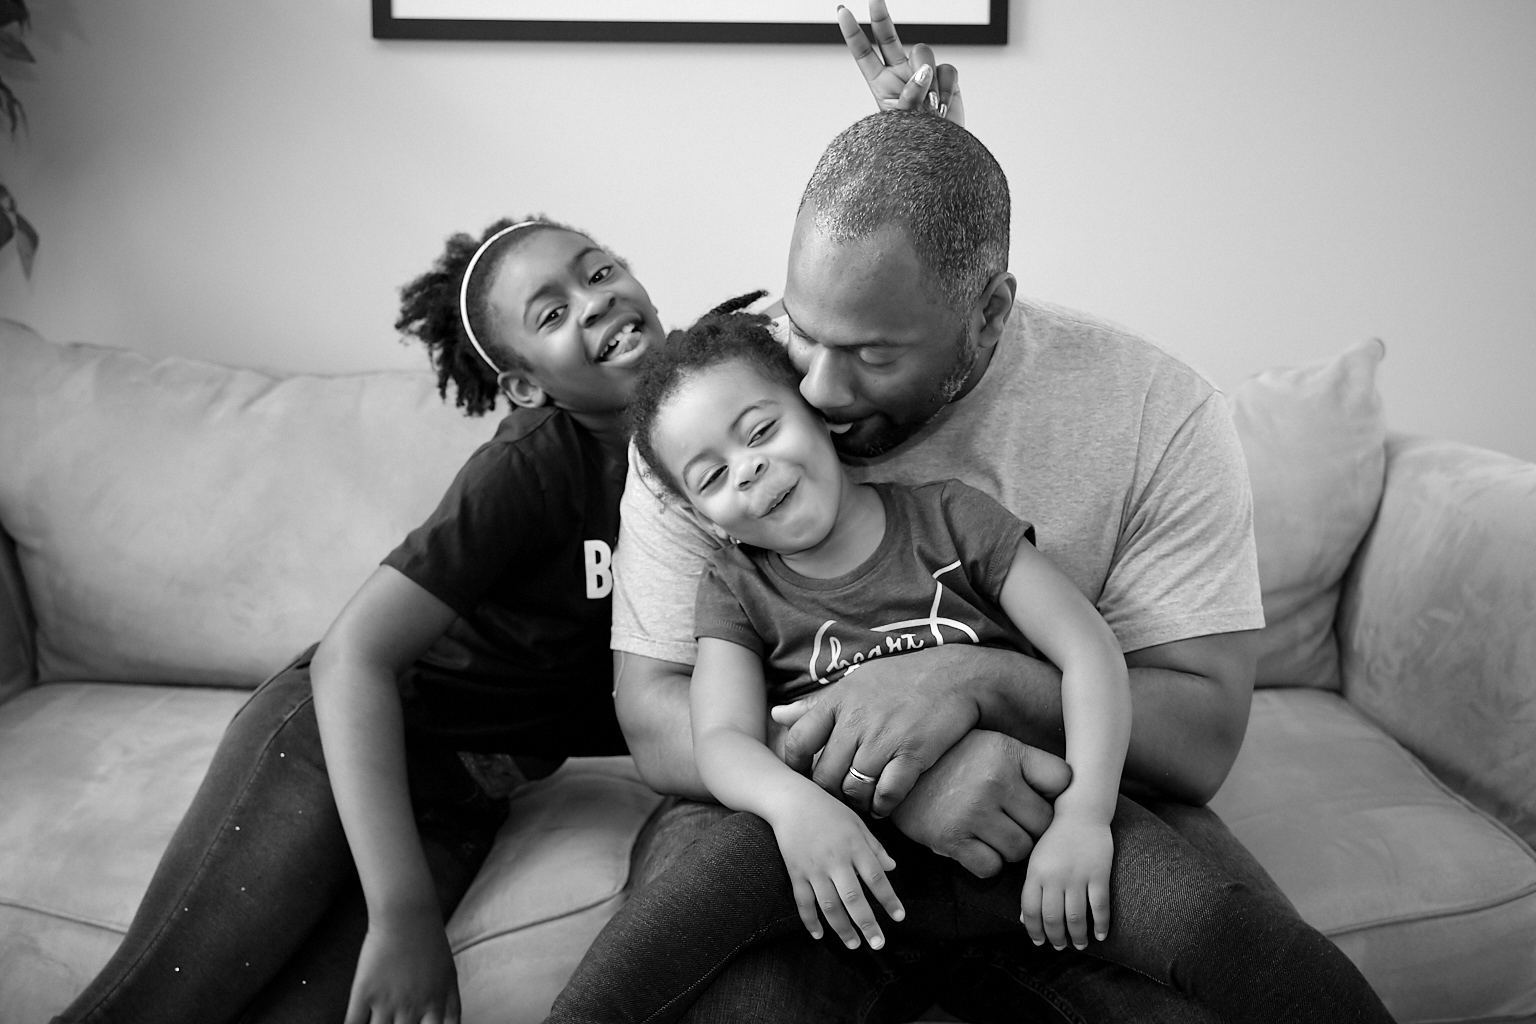 Lenzy_Ruffin_Photograph_Family_Lifestye_2019-04-20-099.jpg